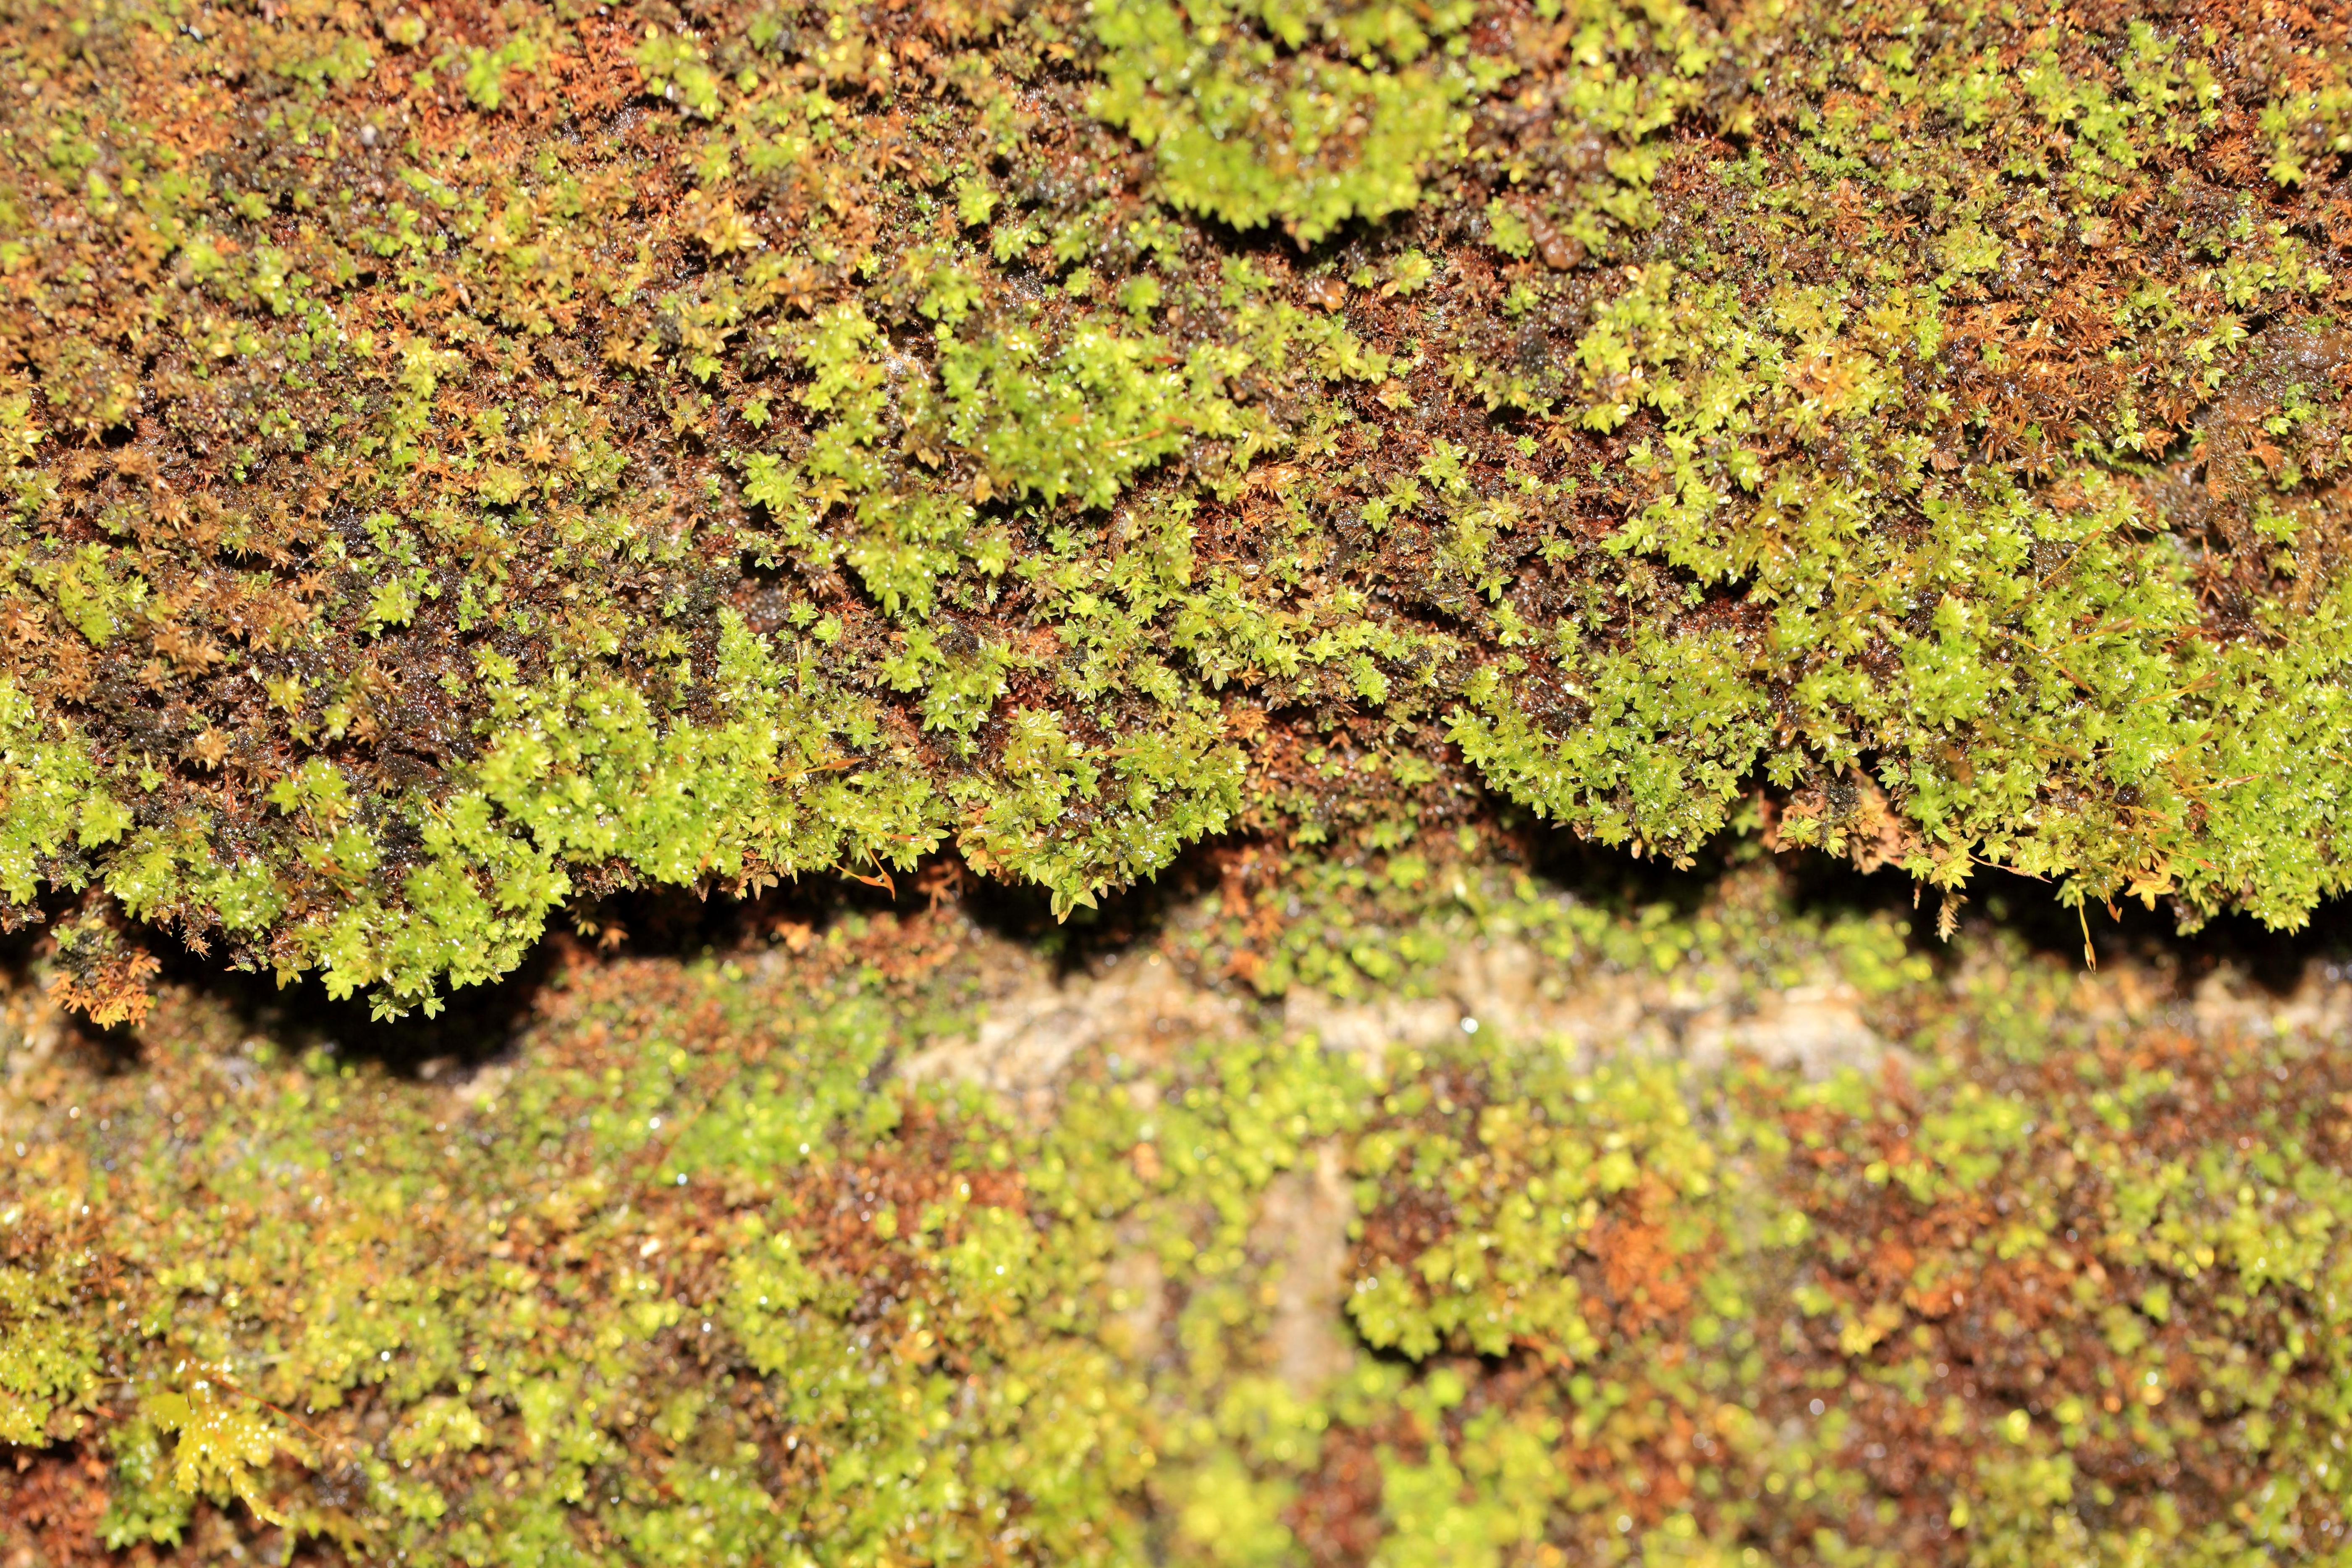 Free picture: texture, leaf, nature, moss, pattern, flora, plant